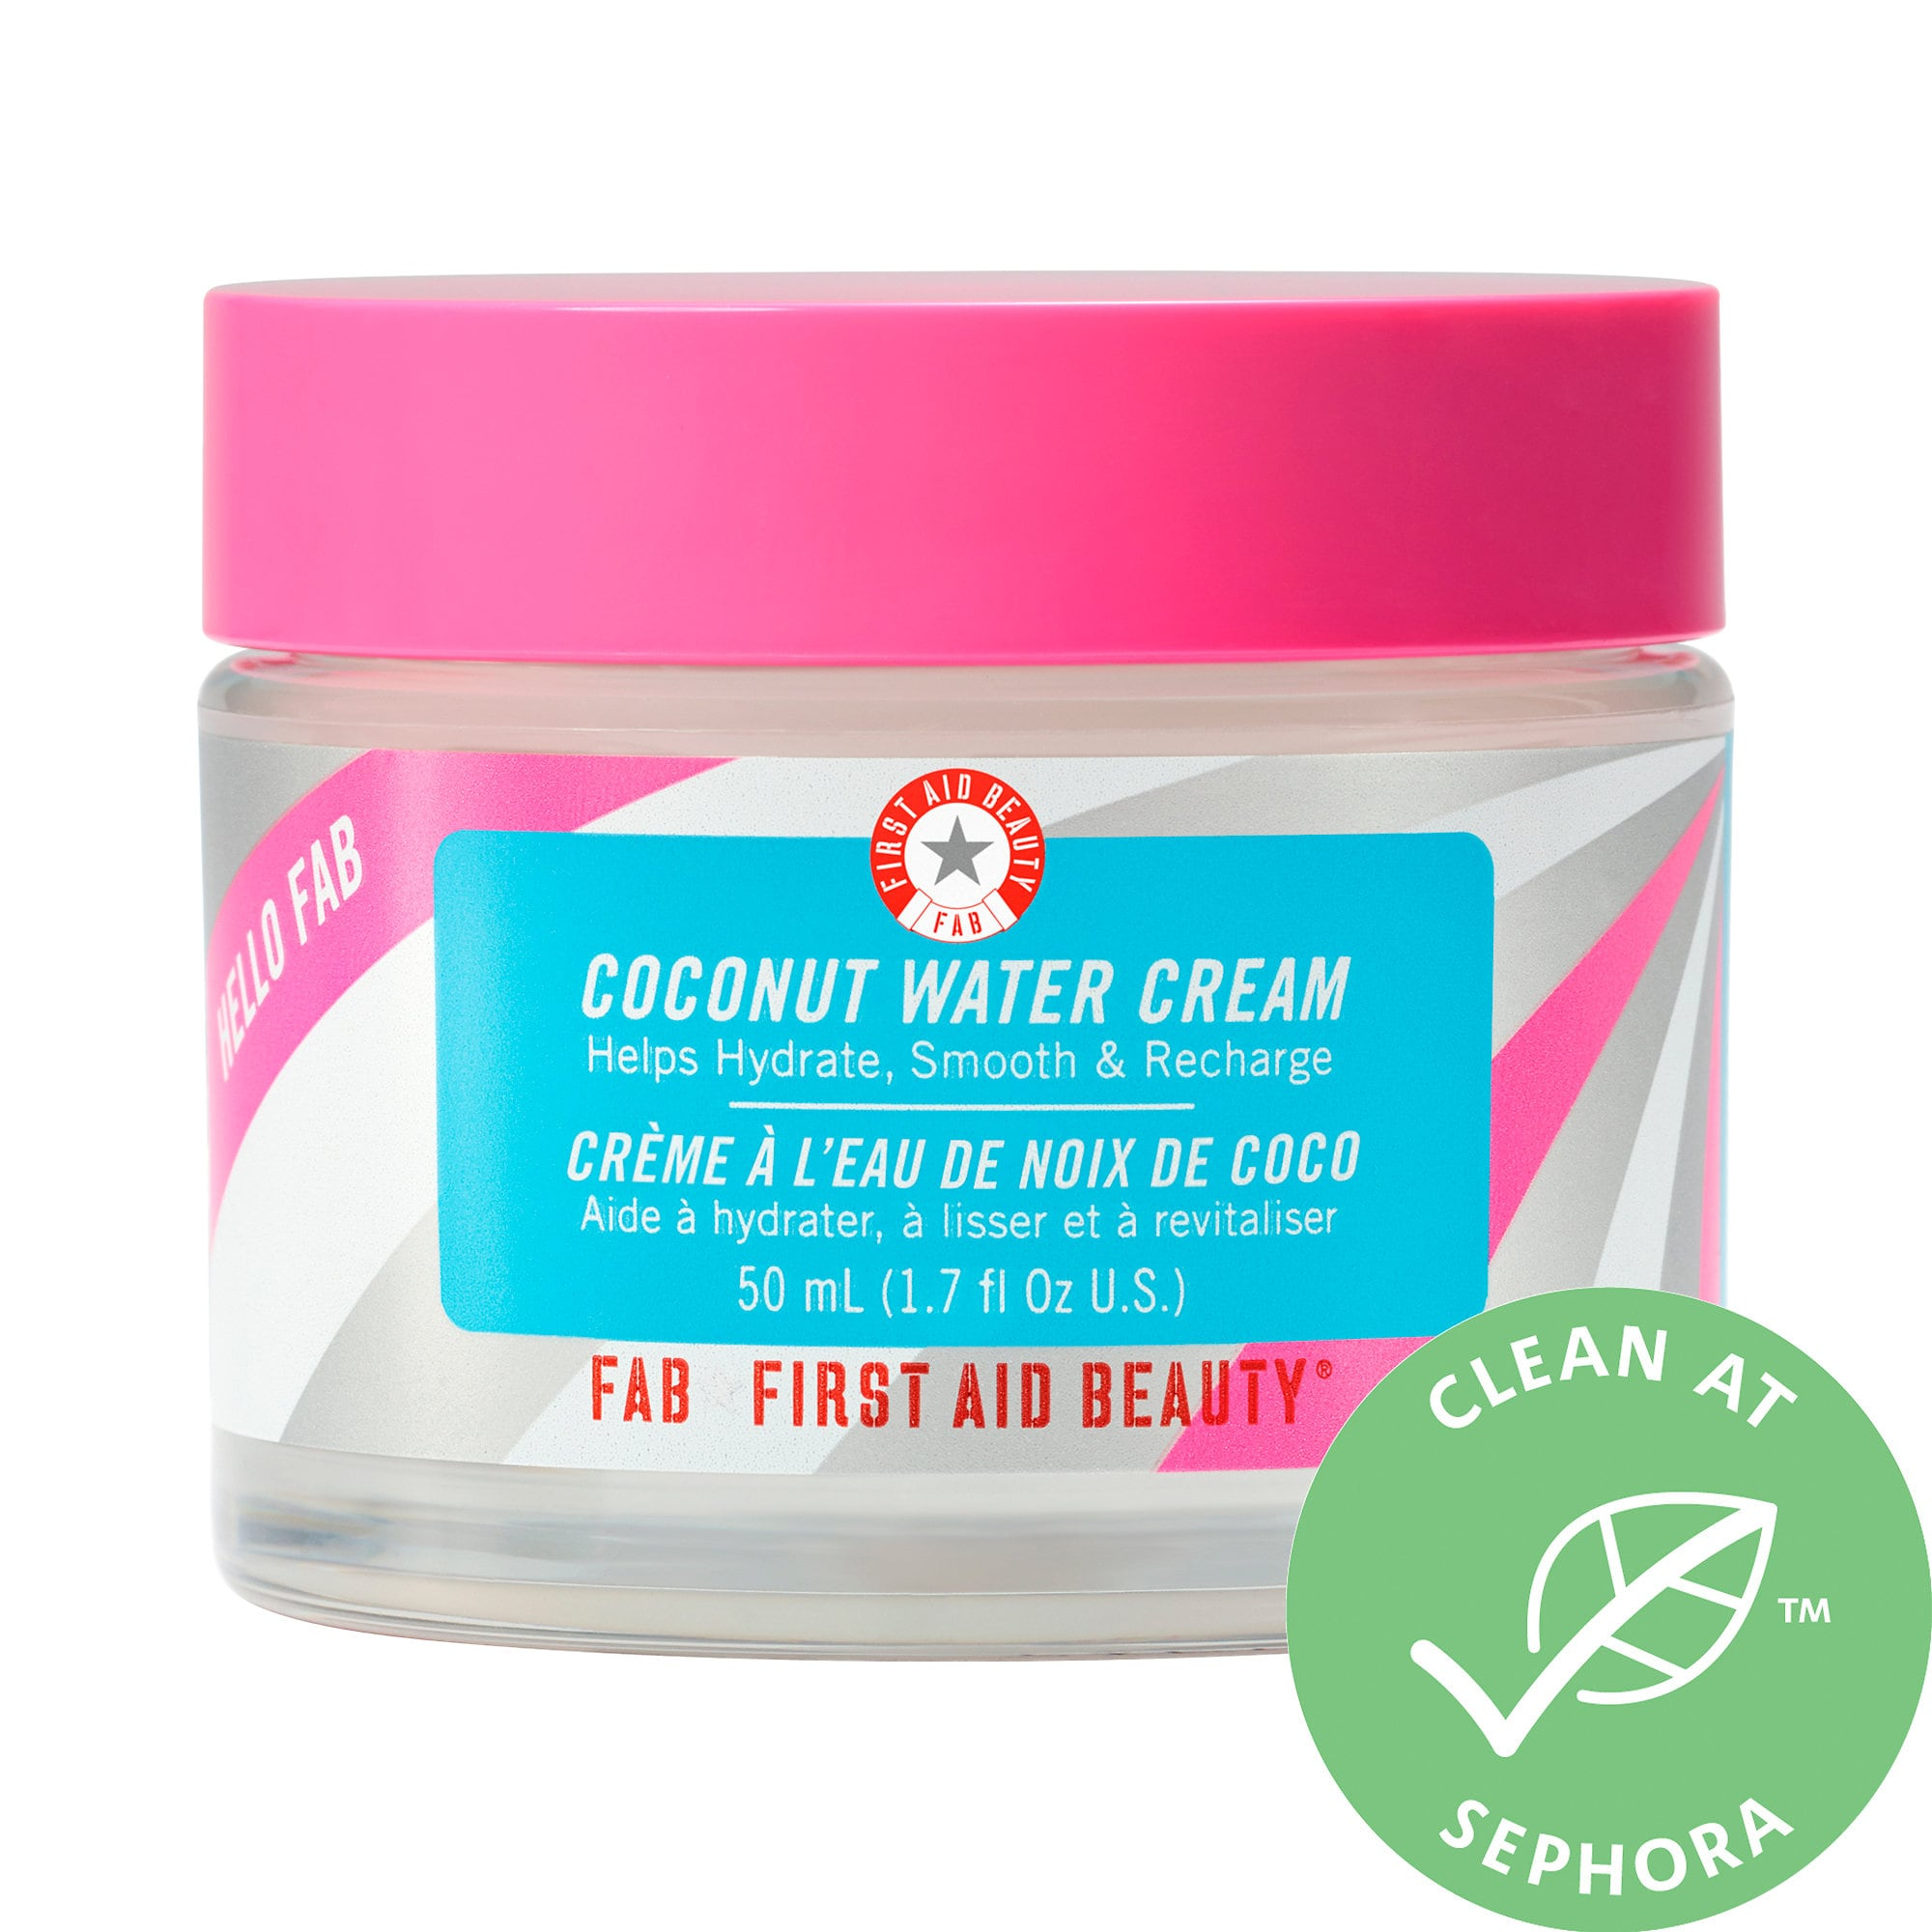 First Aid Beauty-Hello Fab Coconut Water Cream